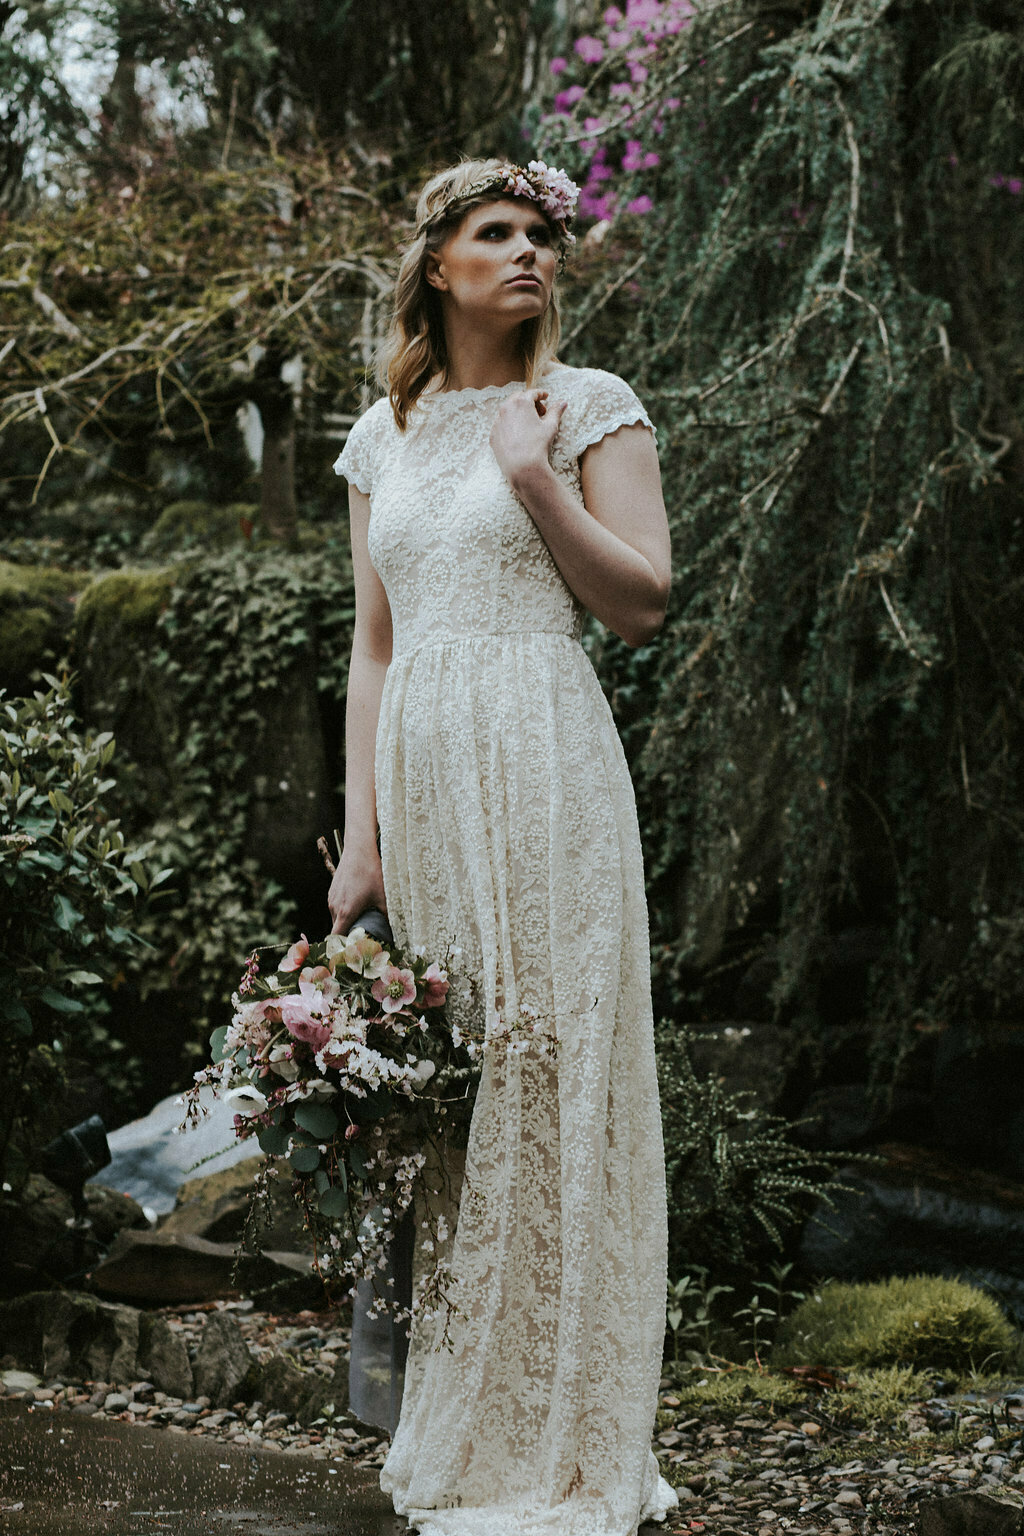 Simple lace low back wedding dress dreamers and lovers dreamers and lovers embroidered lace wedding dress with junglespirit Choice Image